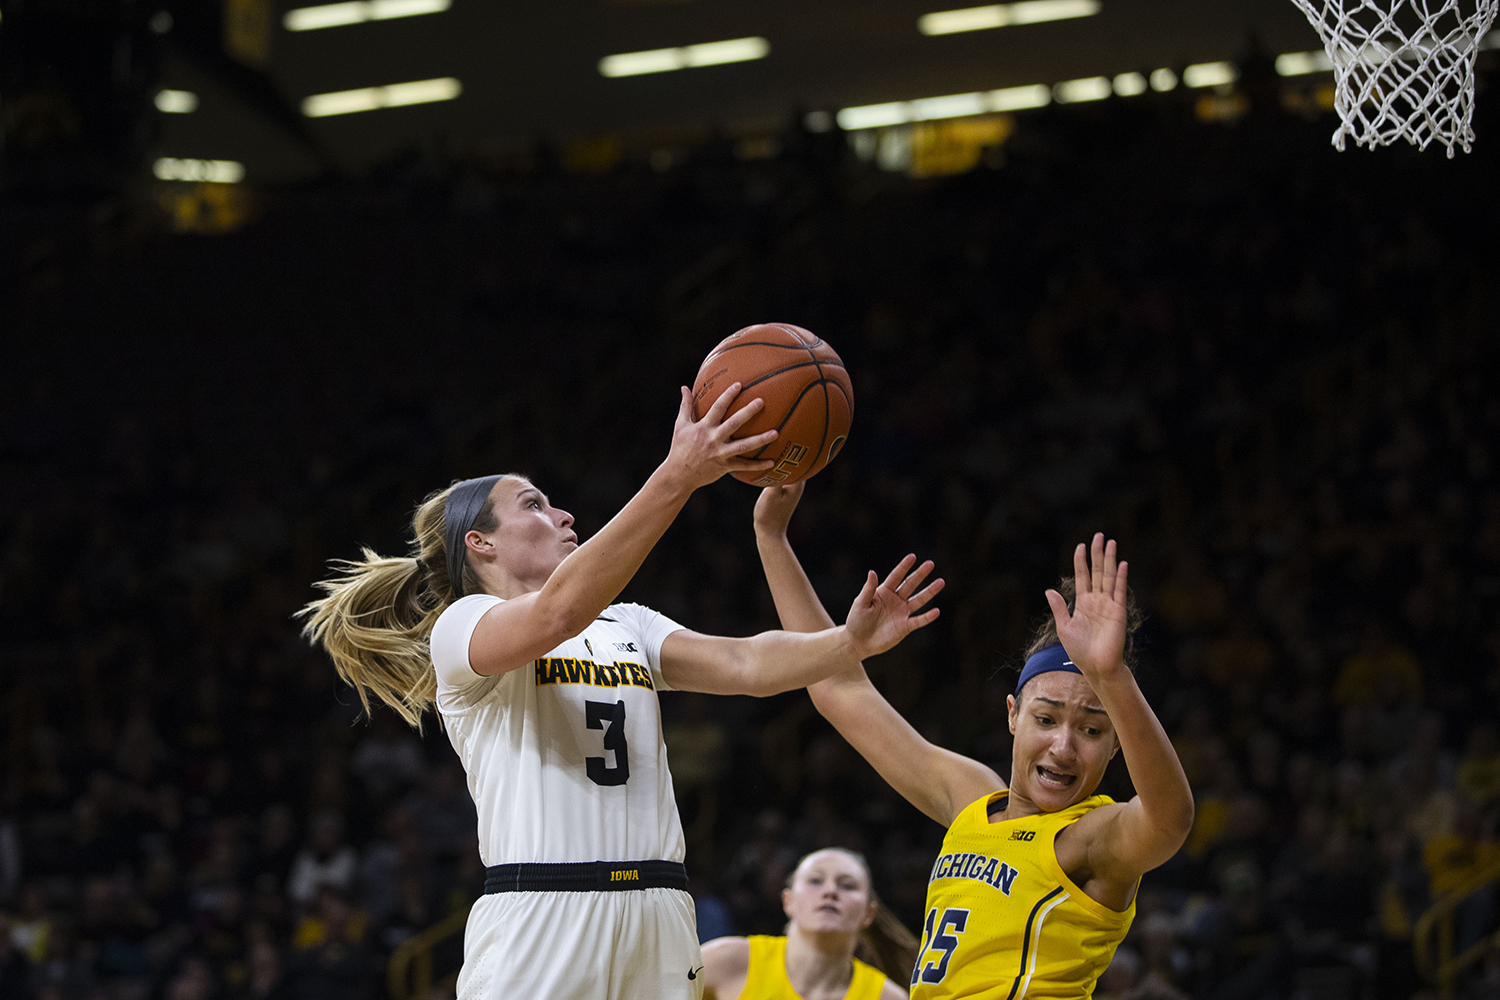 Iowa+guard+Makenzie+Meyer+attempts+a+layup+during+the+Iowa%2FMichigan+women%27s+basketball+game+at+Carver-Hawkeye+Arena+on+Thursday%2C+January+17%2C+2019.+The+Hawkeyes+defeated+the+Wolverines%2C+75-61.+